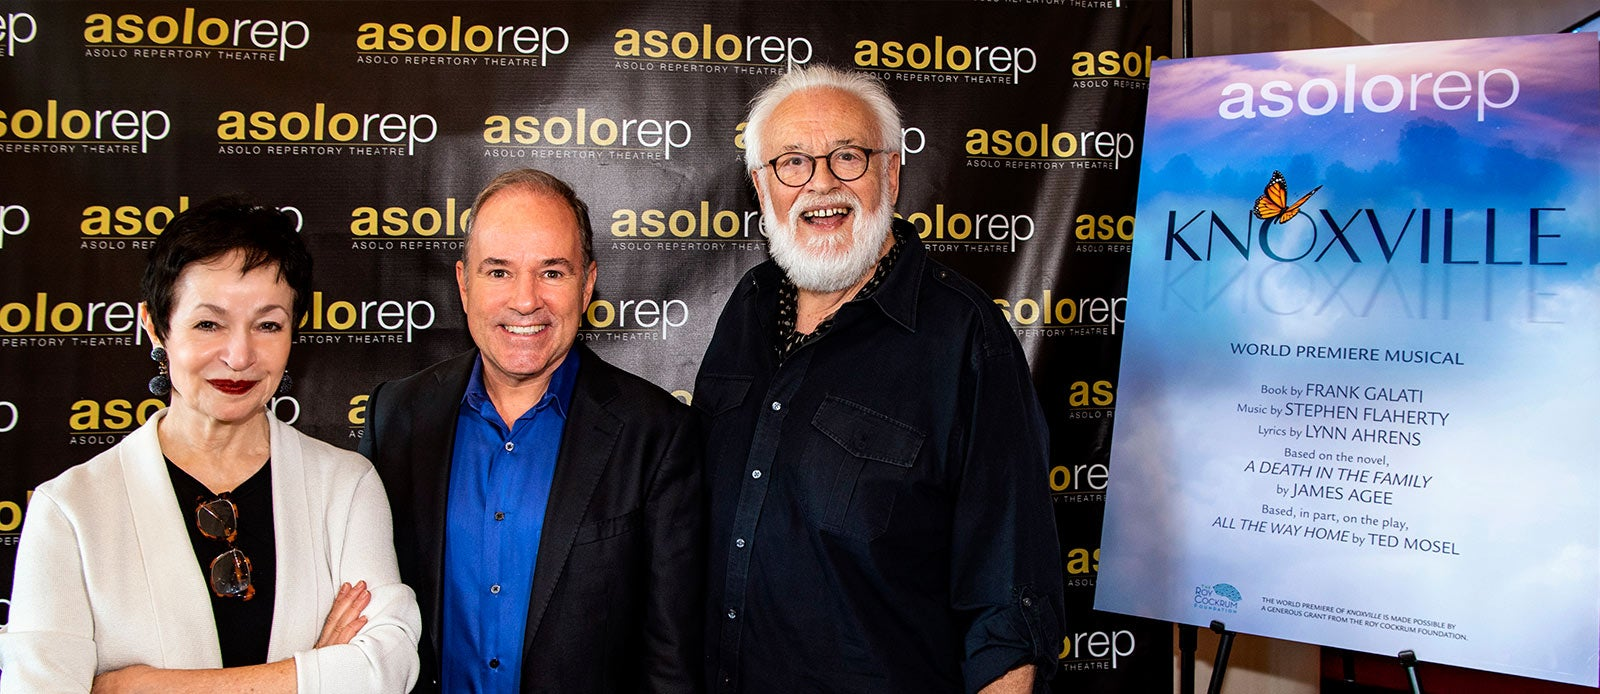 More Info for Asolo Rep Announces World Premiere Musical: Knoxville